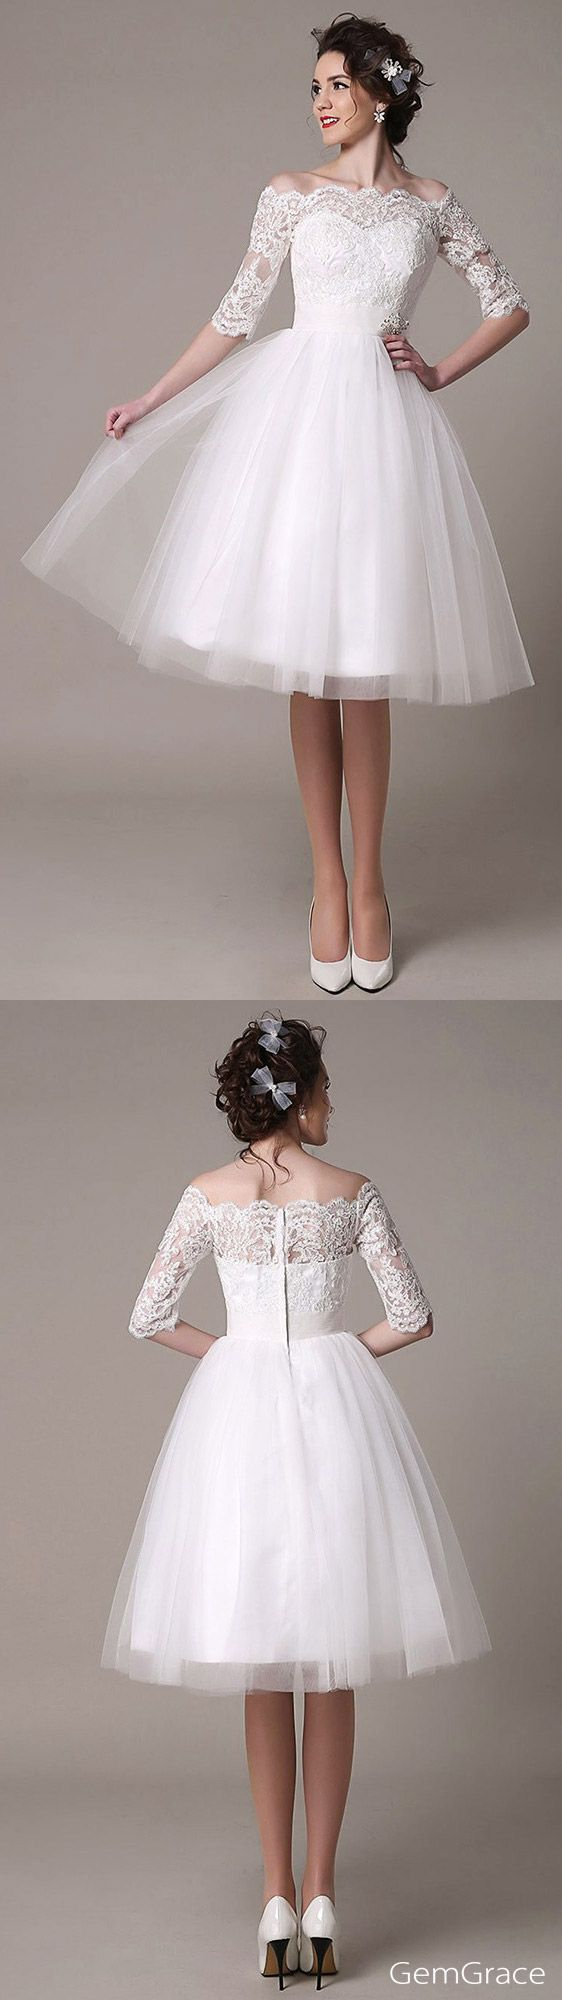 Vintage short wedding dress. I love Vintage! This beautiful knee length wedding dress is made with tulle and unique lace. One elegant half sleeved lace style for summer weddings. Unique Vow renewal dress, mature brides wedding dress, reception dress, dress for bridal shower... For comfy wearing, custom it for your size.